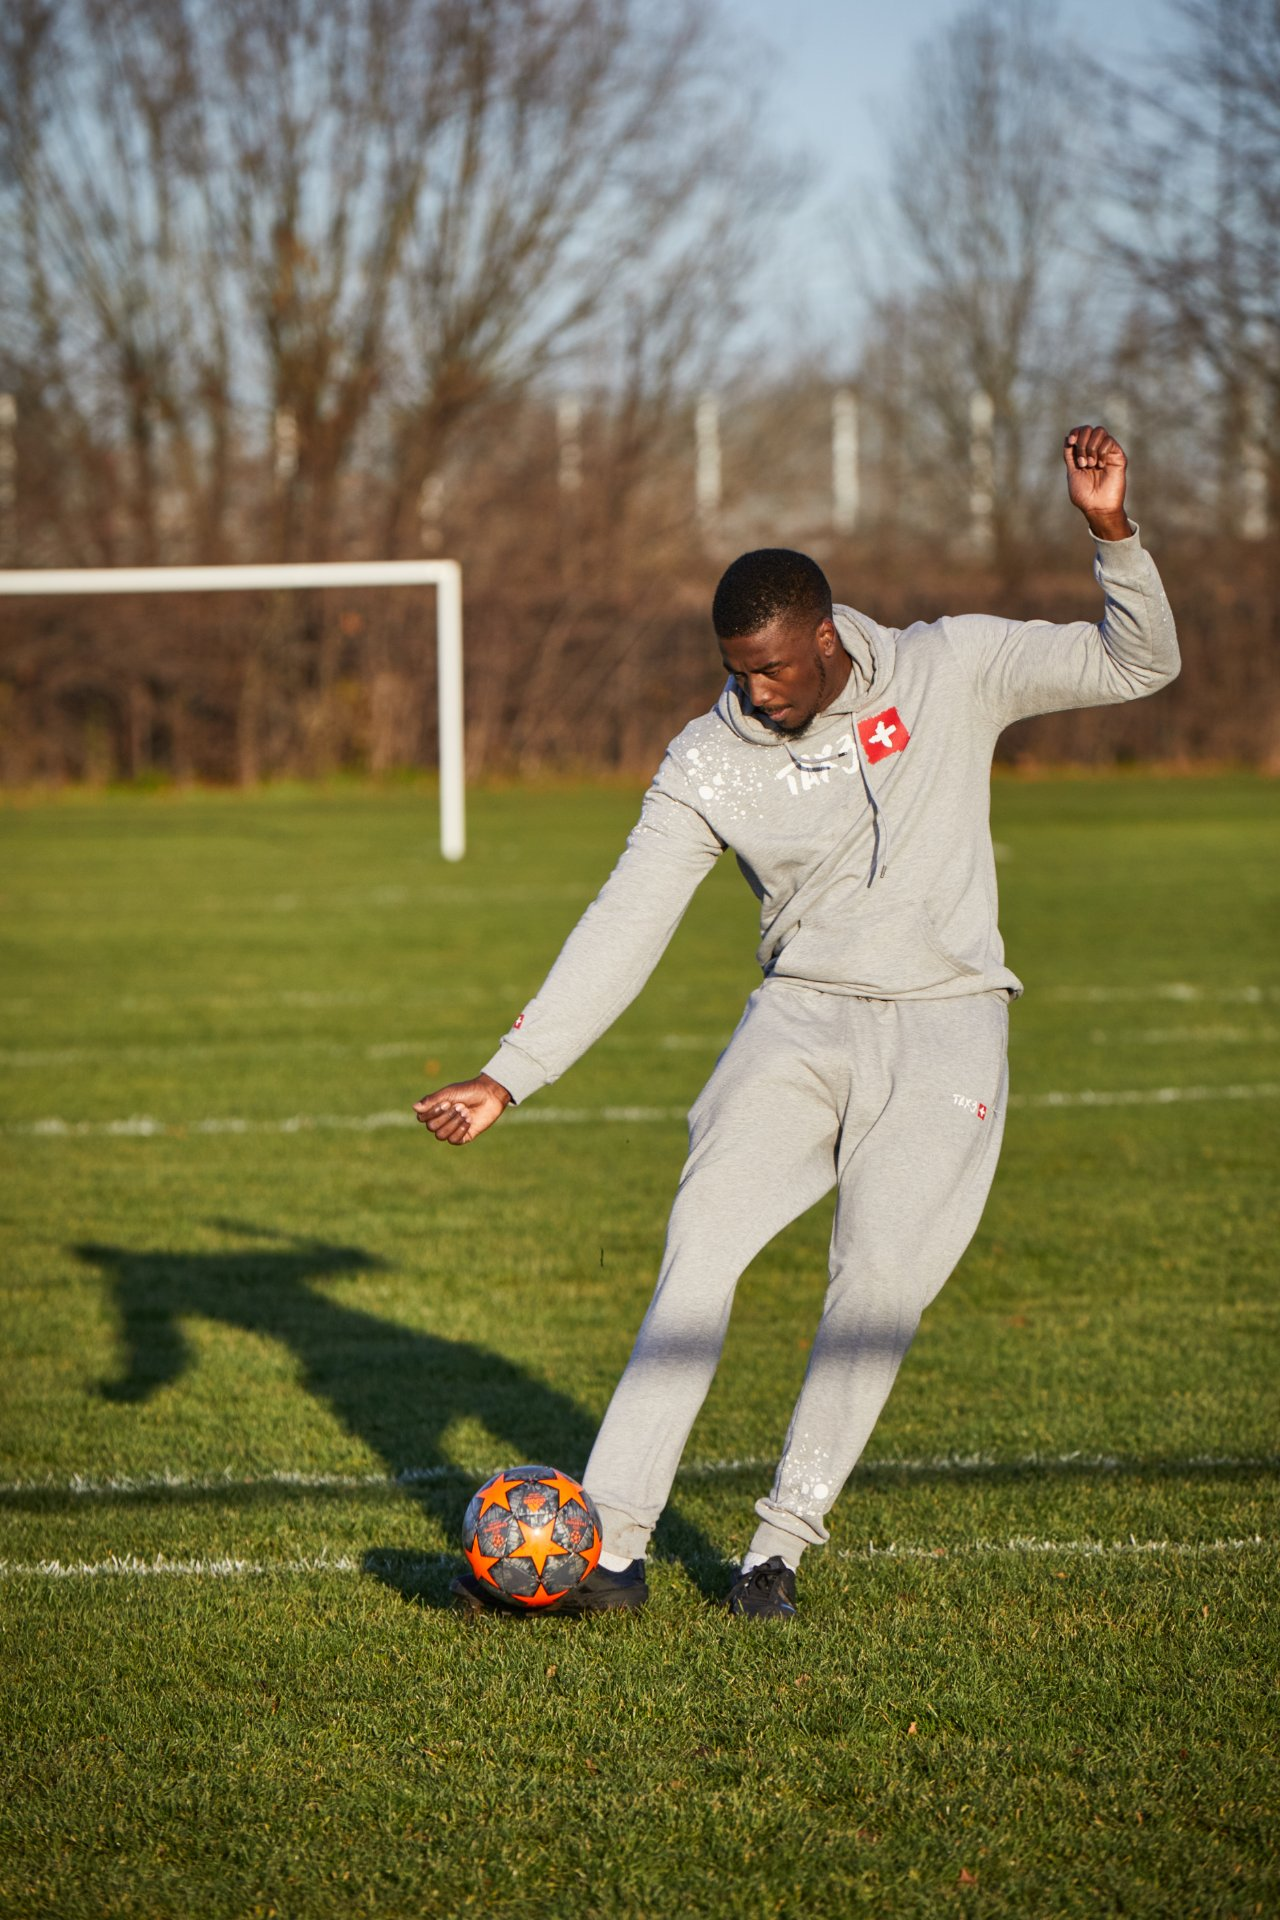 A Black man wearing a gray tracksuit kicking a football with his right foot